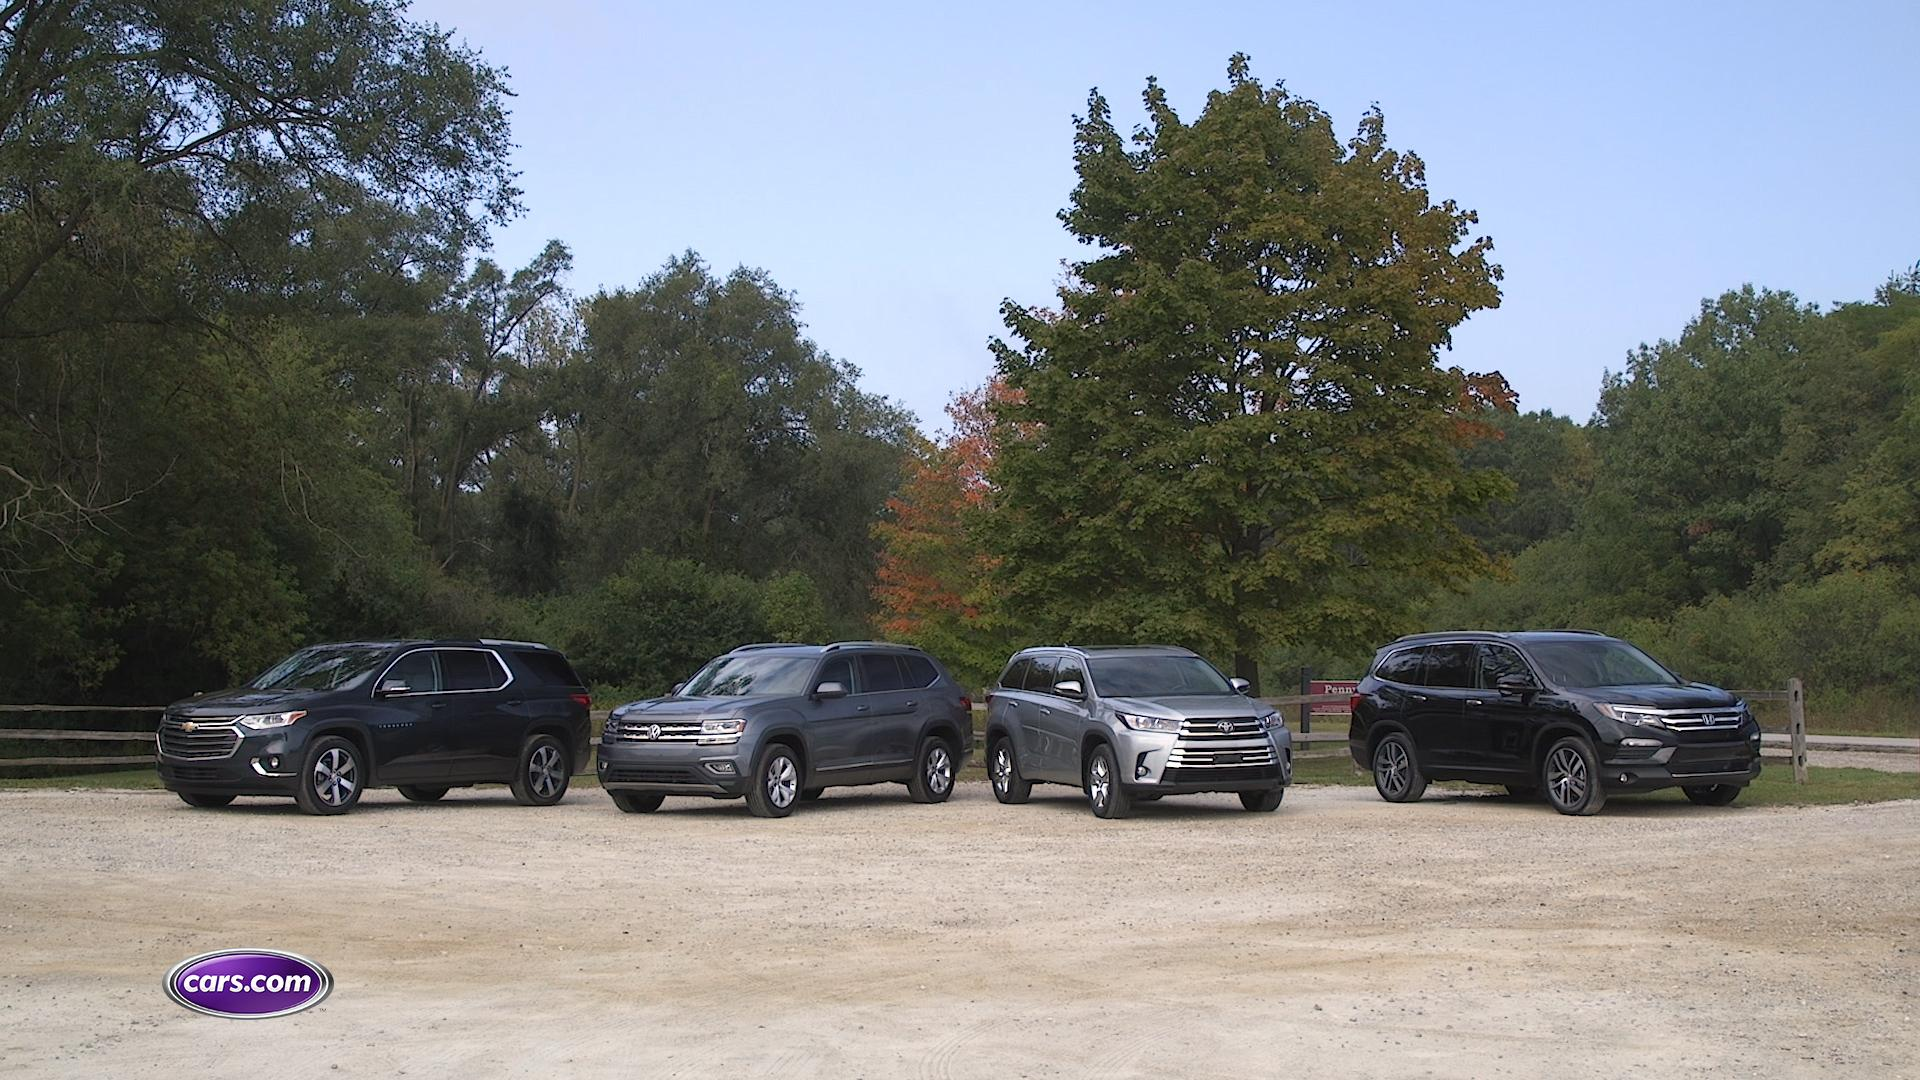 2017 3-Row SUV Challenge Video